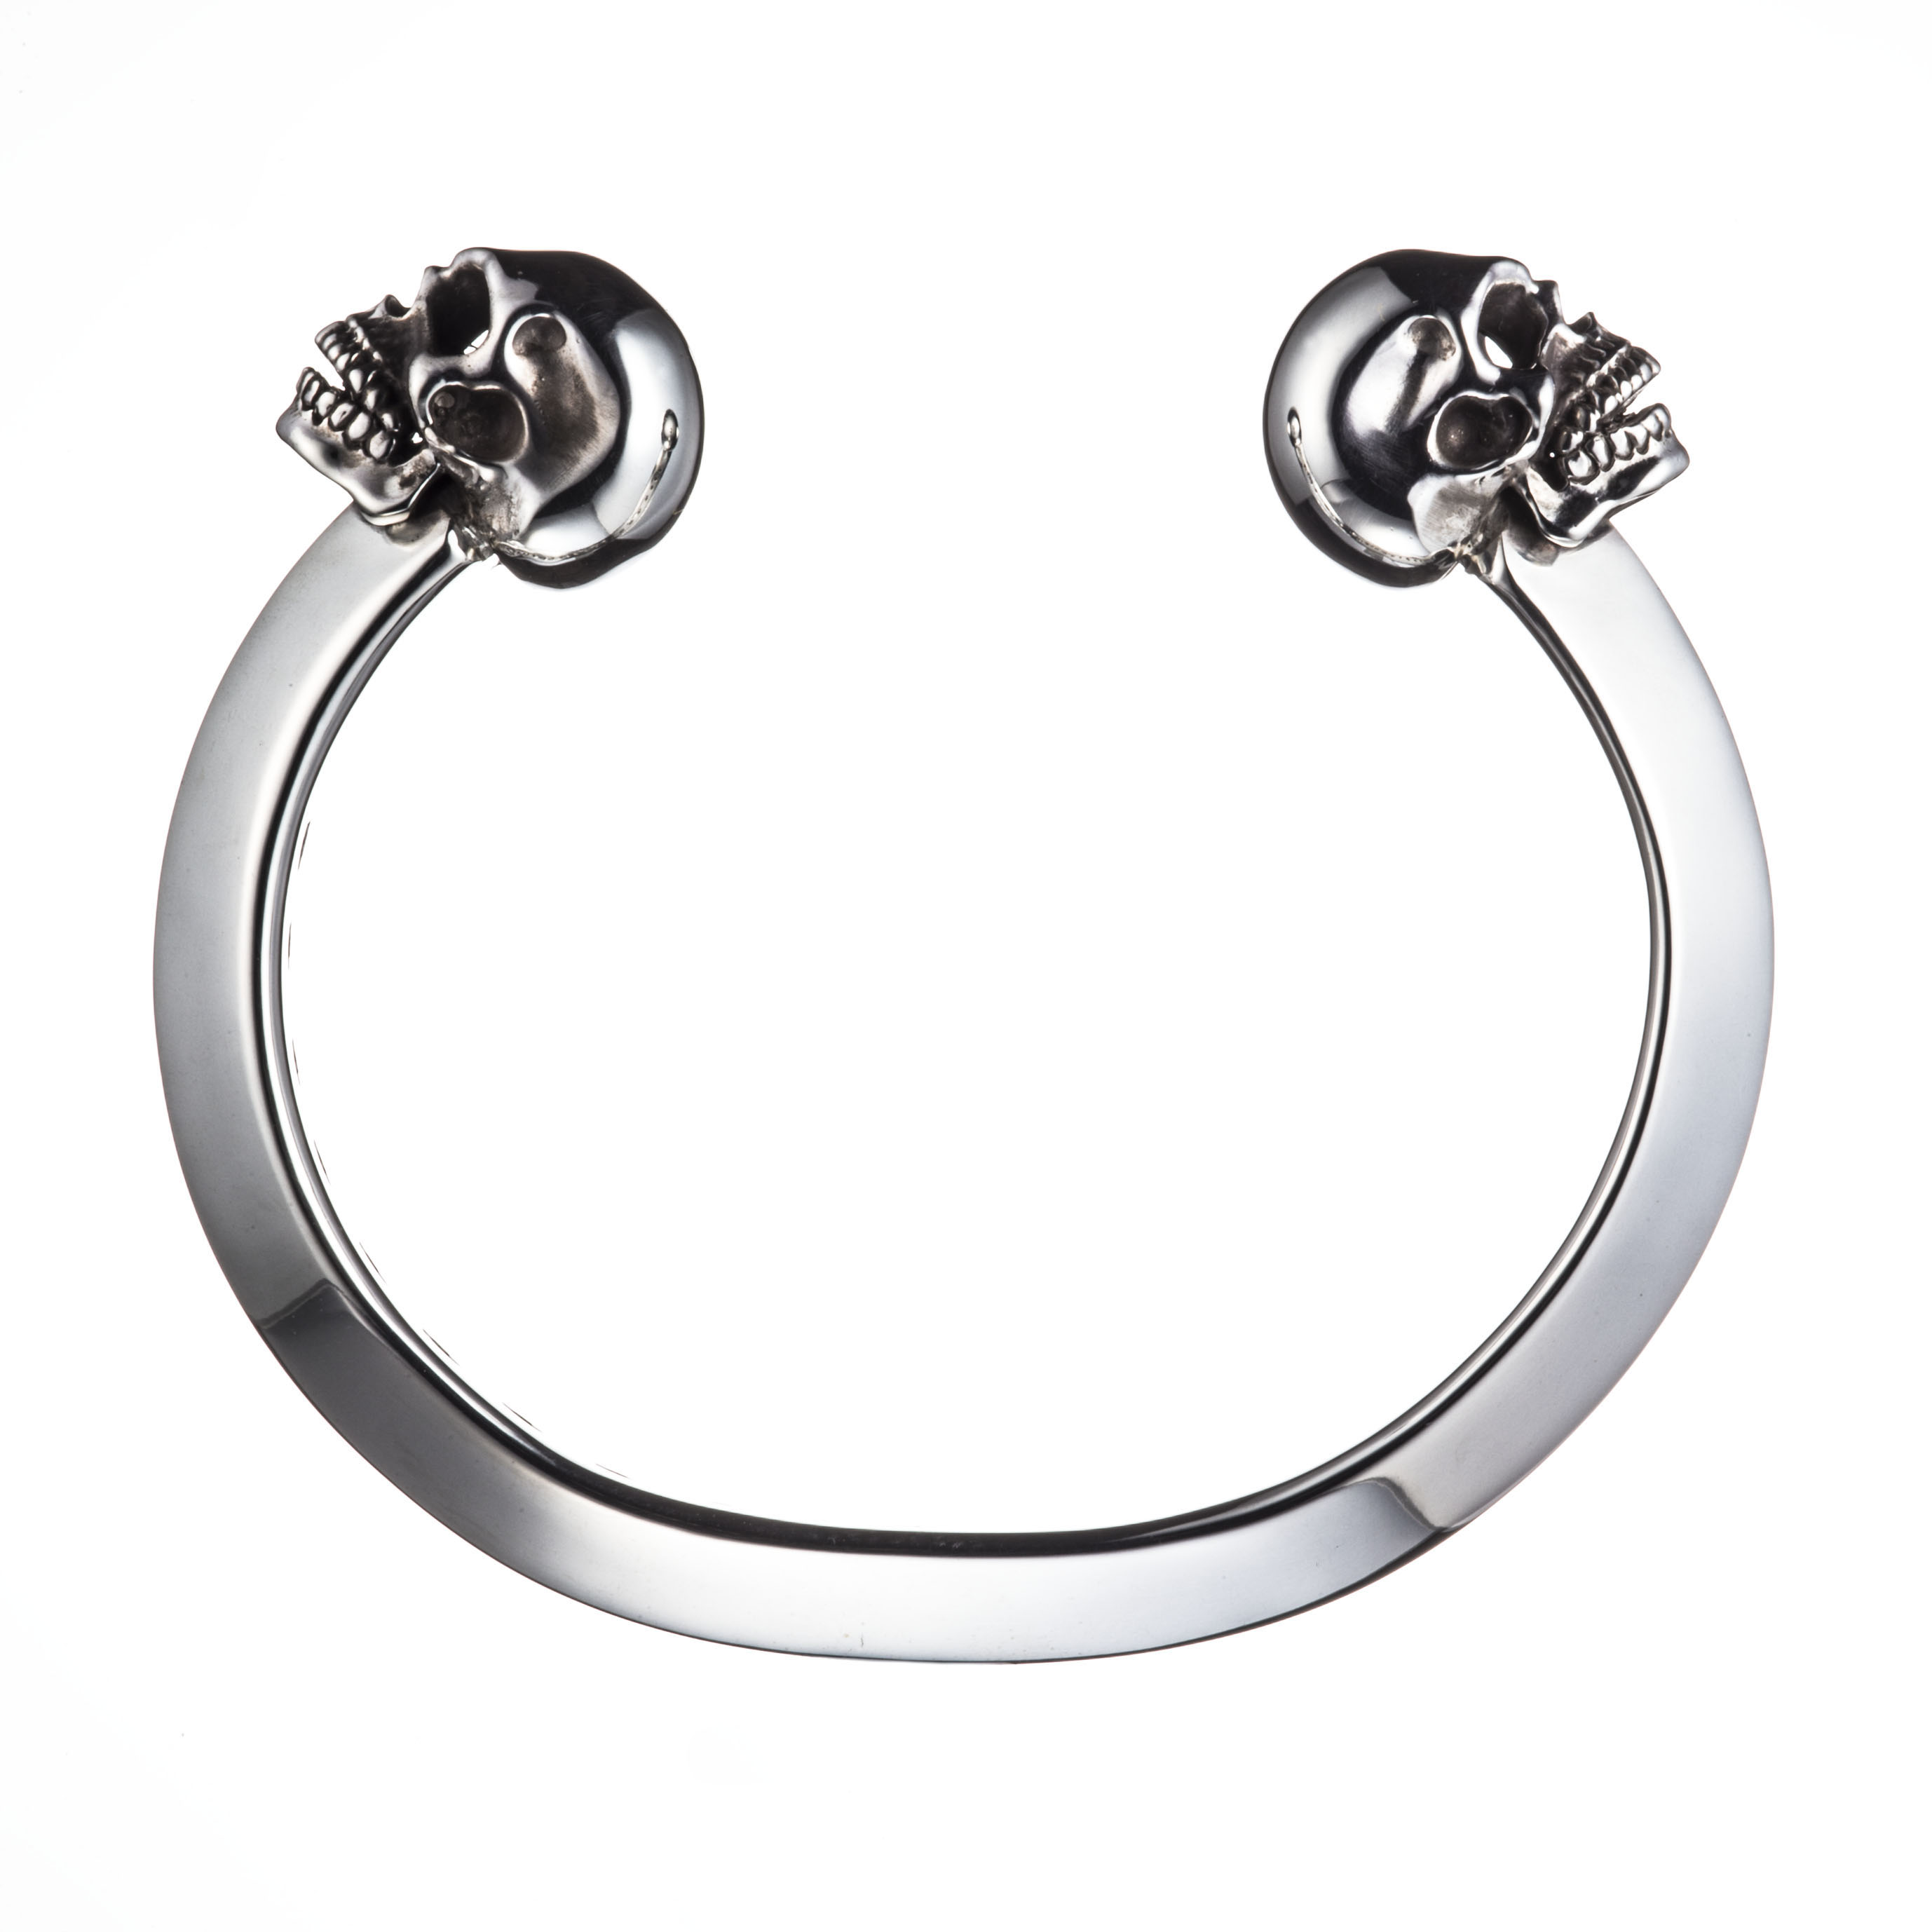 TWIN SKULL BANGLE (NORMAL SKULL)